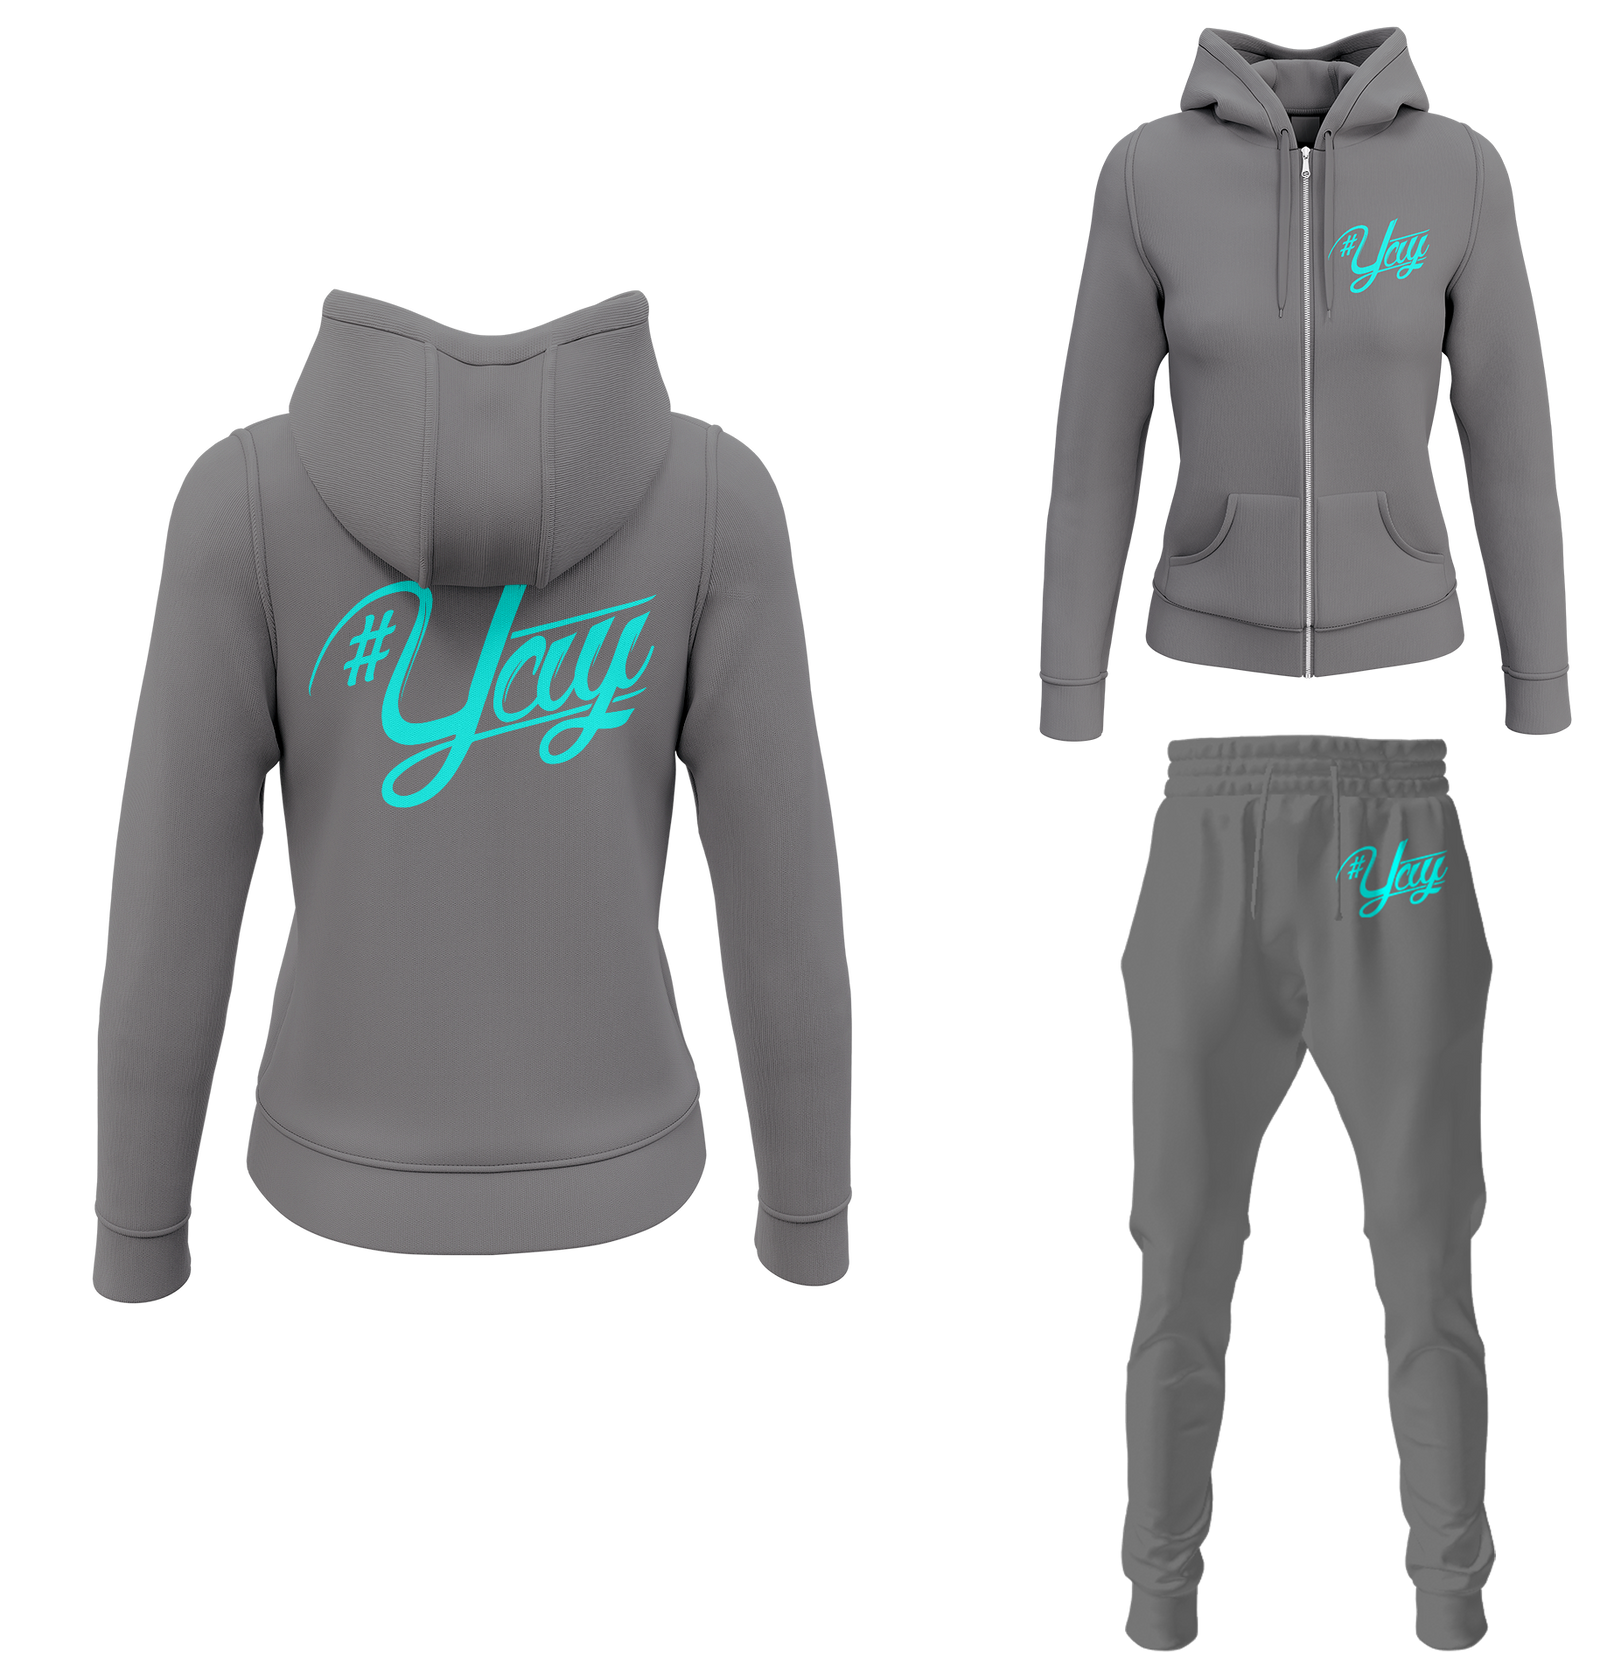 Women's Classic Yay Zipped Sweatsuits